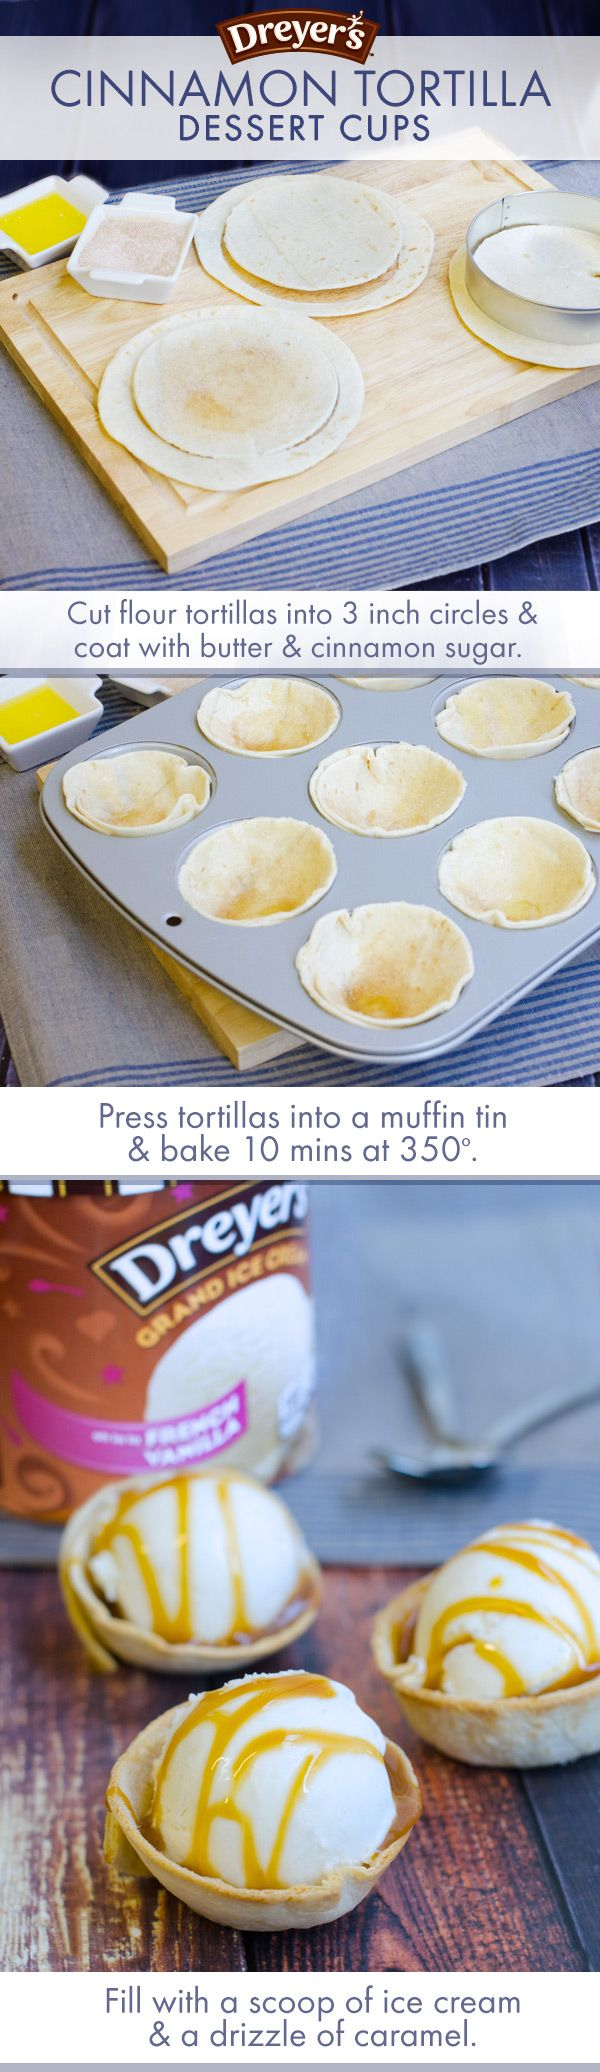 This recipe is cinnamony, sweet and the perfect Fall treat! Cut flour tortillas into 3-inch circles, coat with melted butter and cinnamon sugar, then bake in muffin tins. Once cool, fill with scoops of ice cream and a drizzle of caramel!